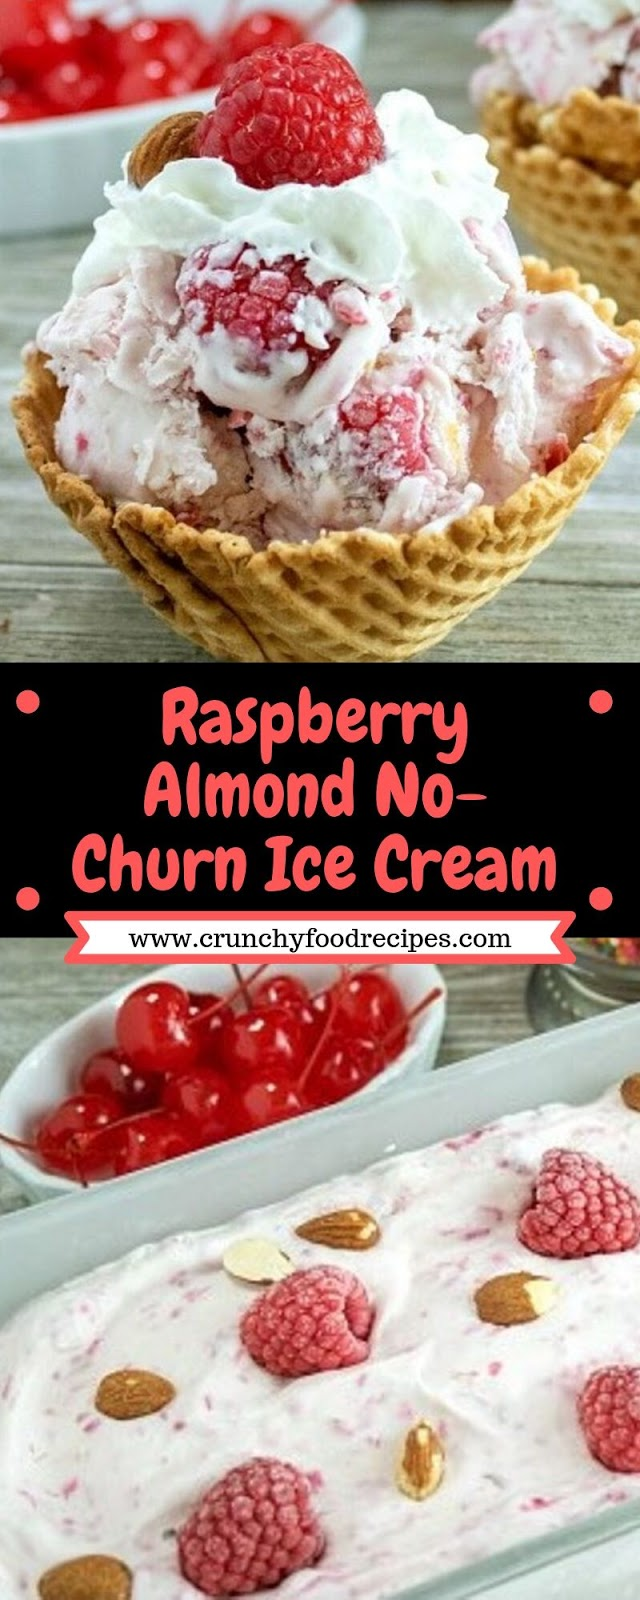 Raspberry Almond No-Churn Ice Cream